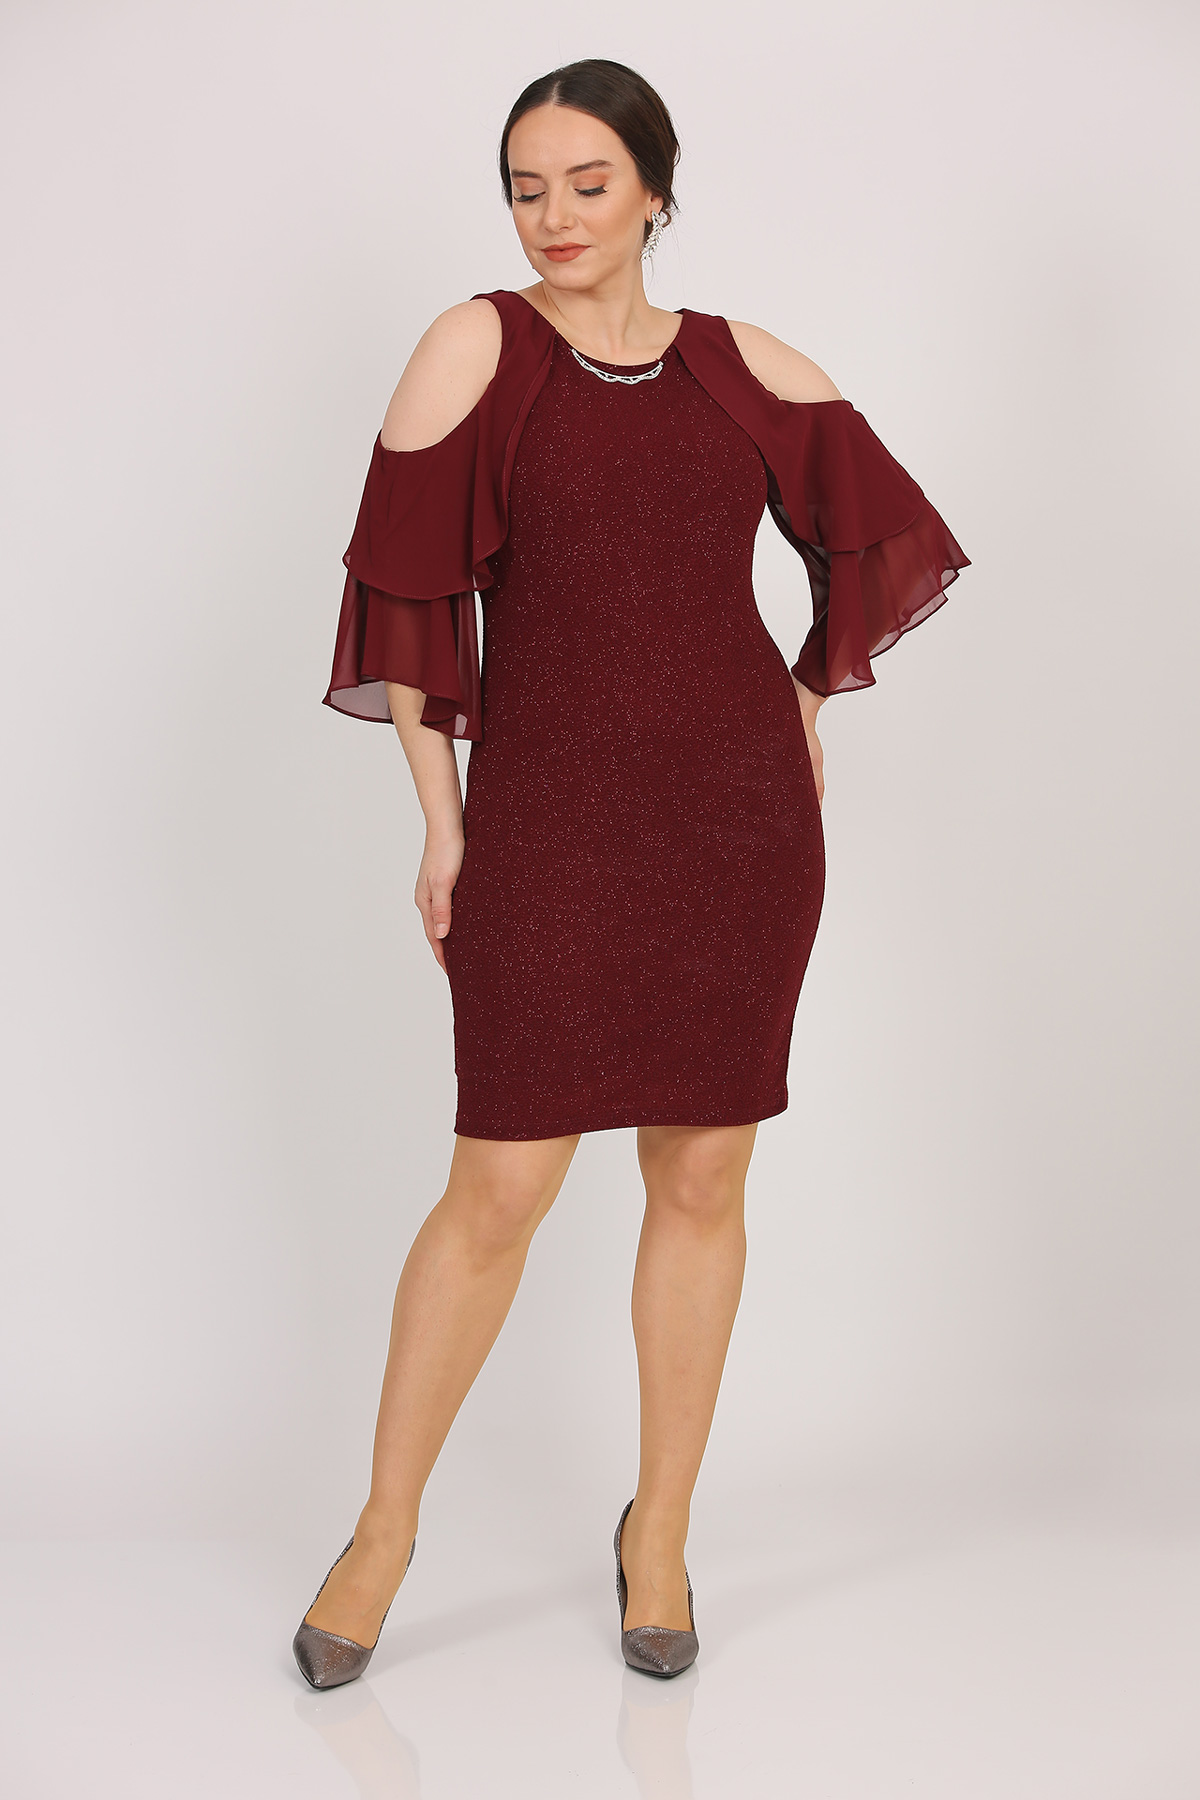 Oversize Neck Accessorised Silvery Claret Red Dress